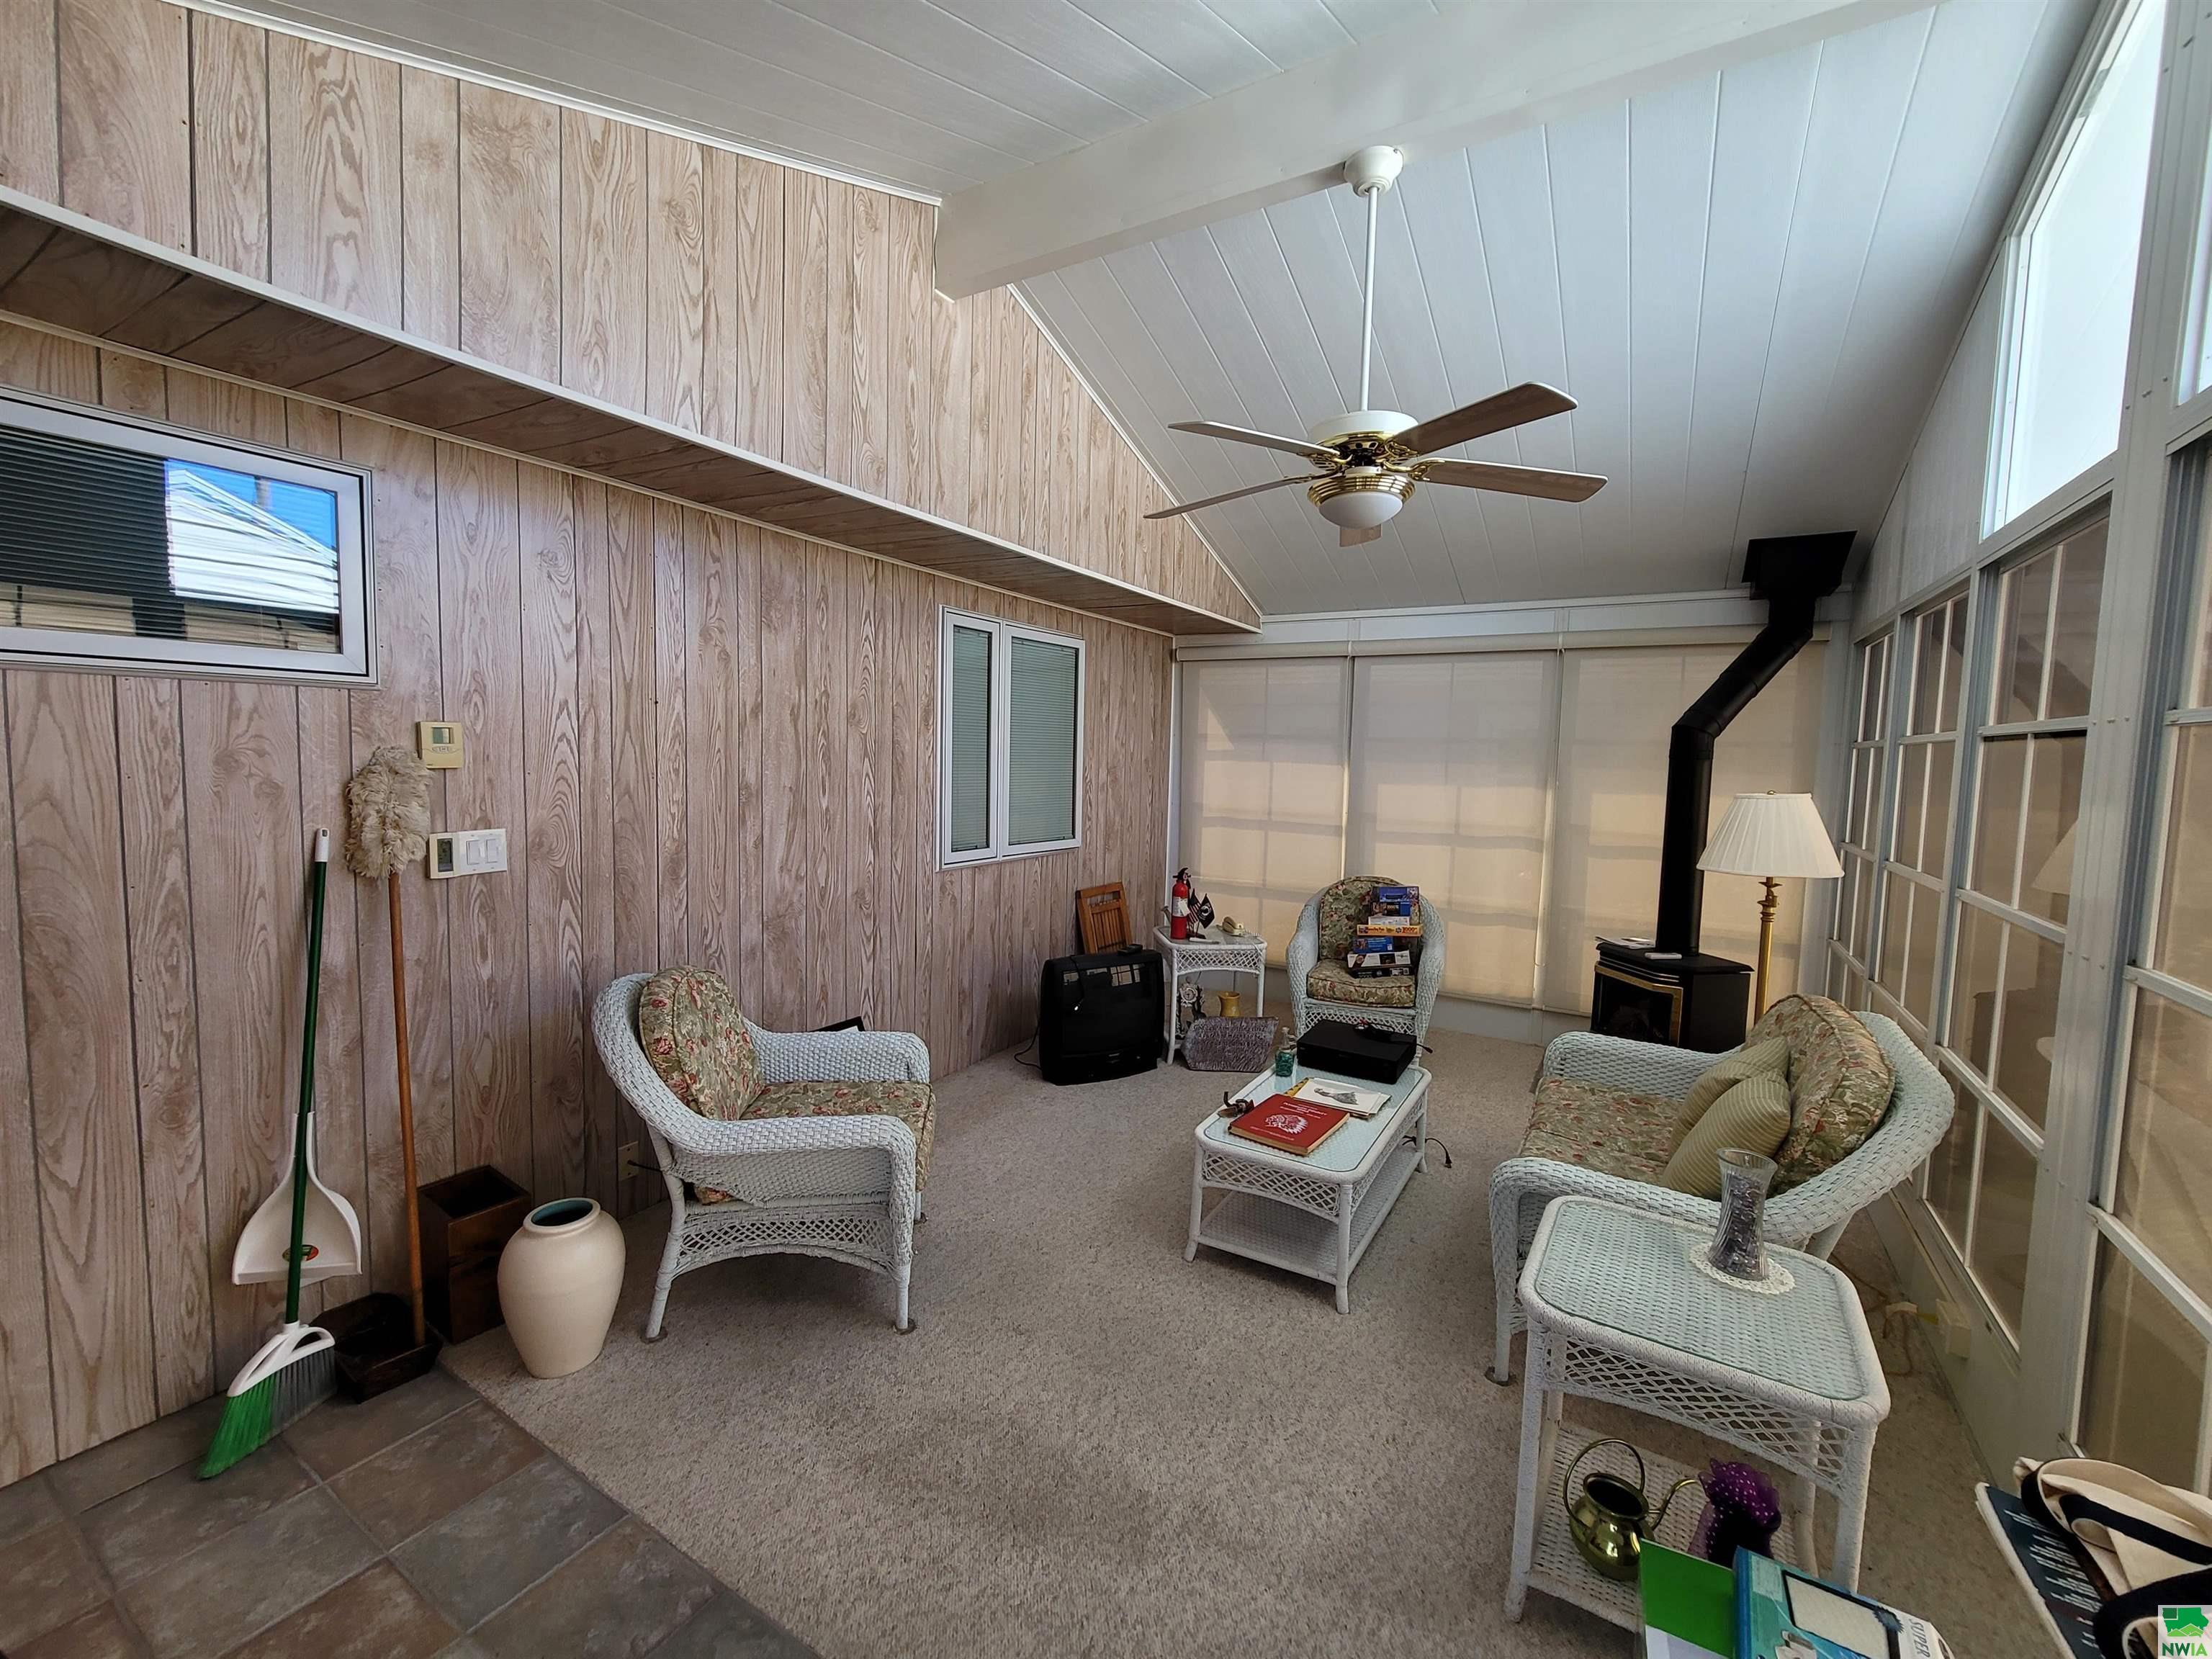 MLS# 814701 for Sale